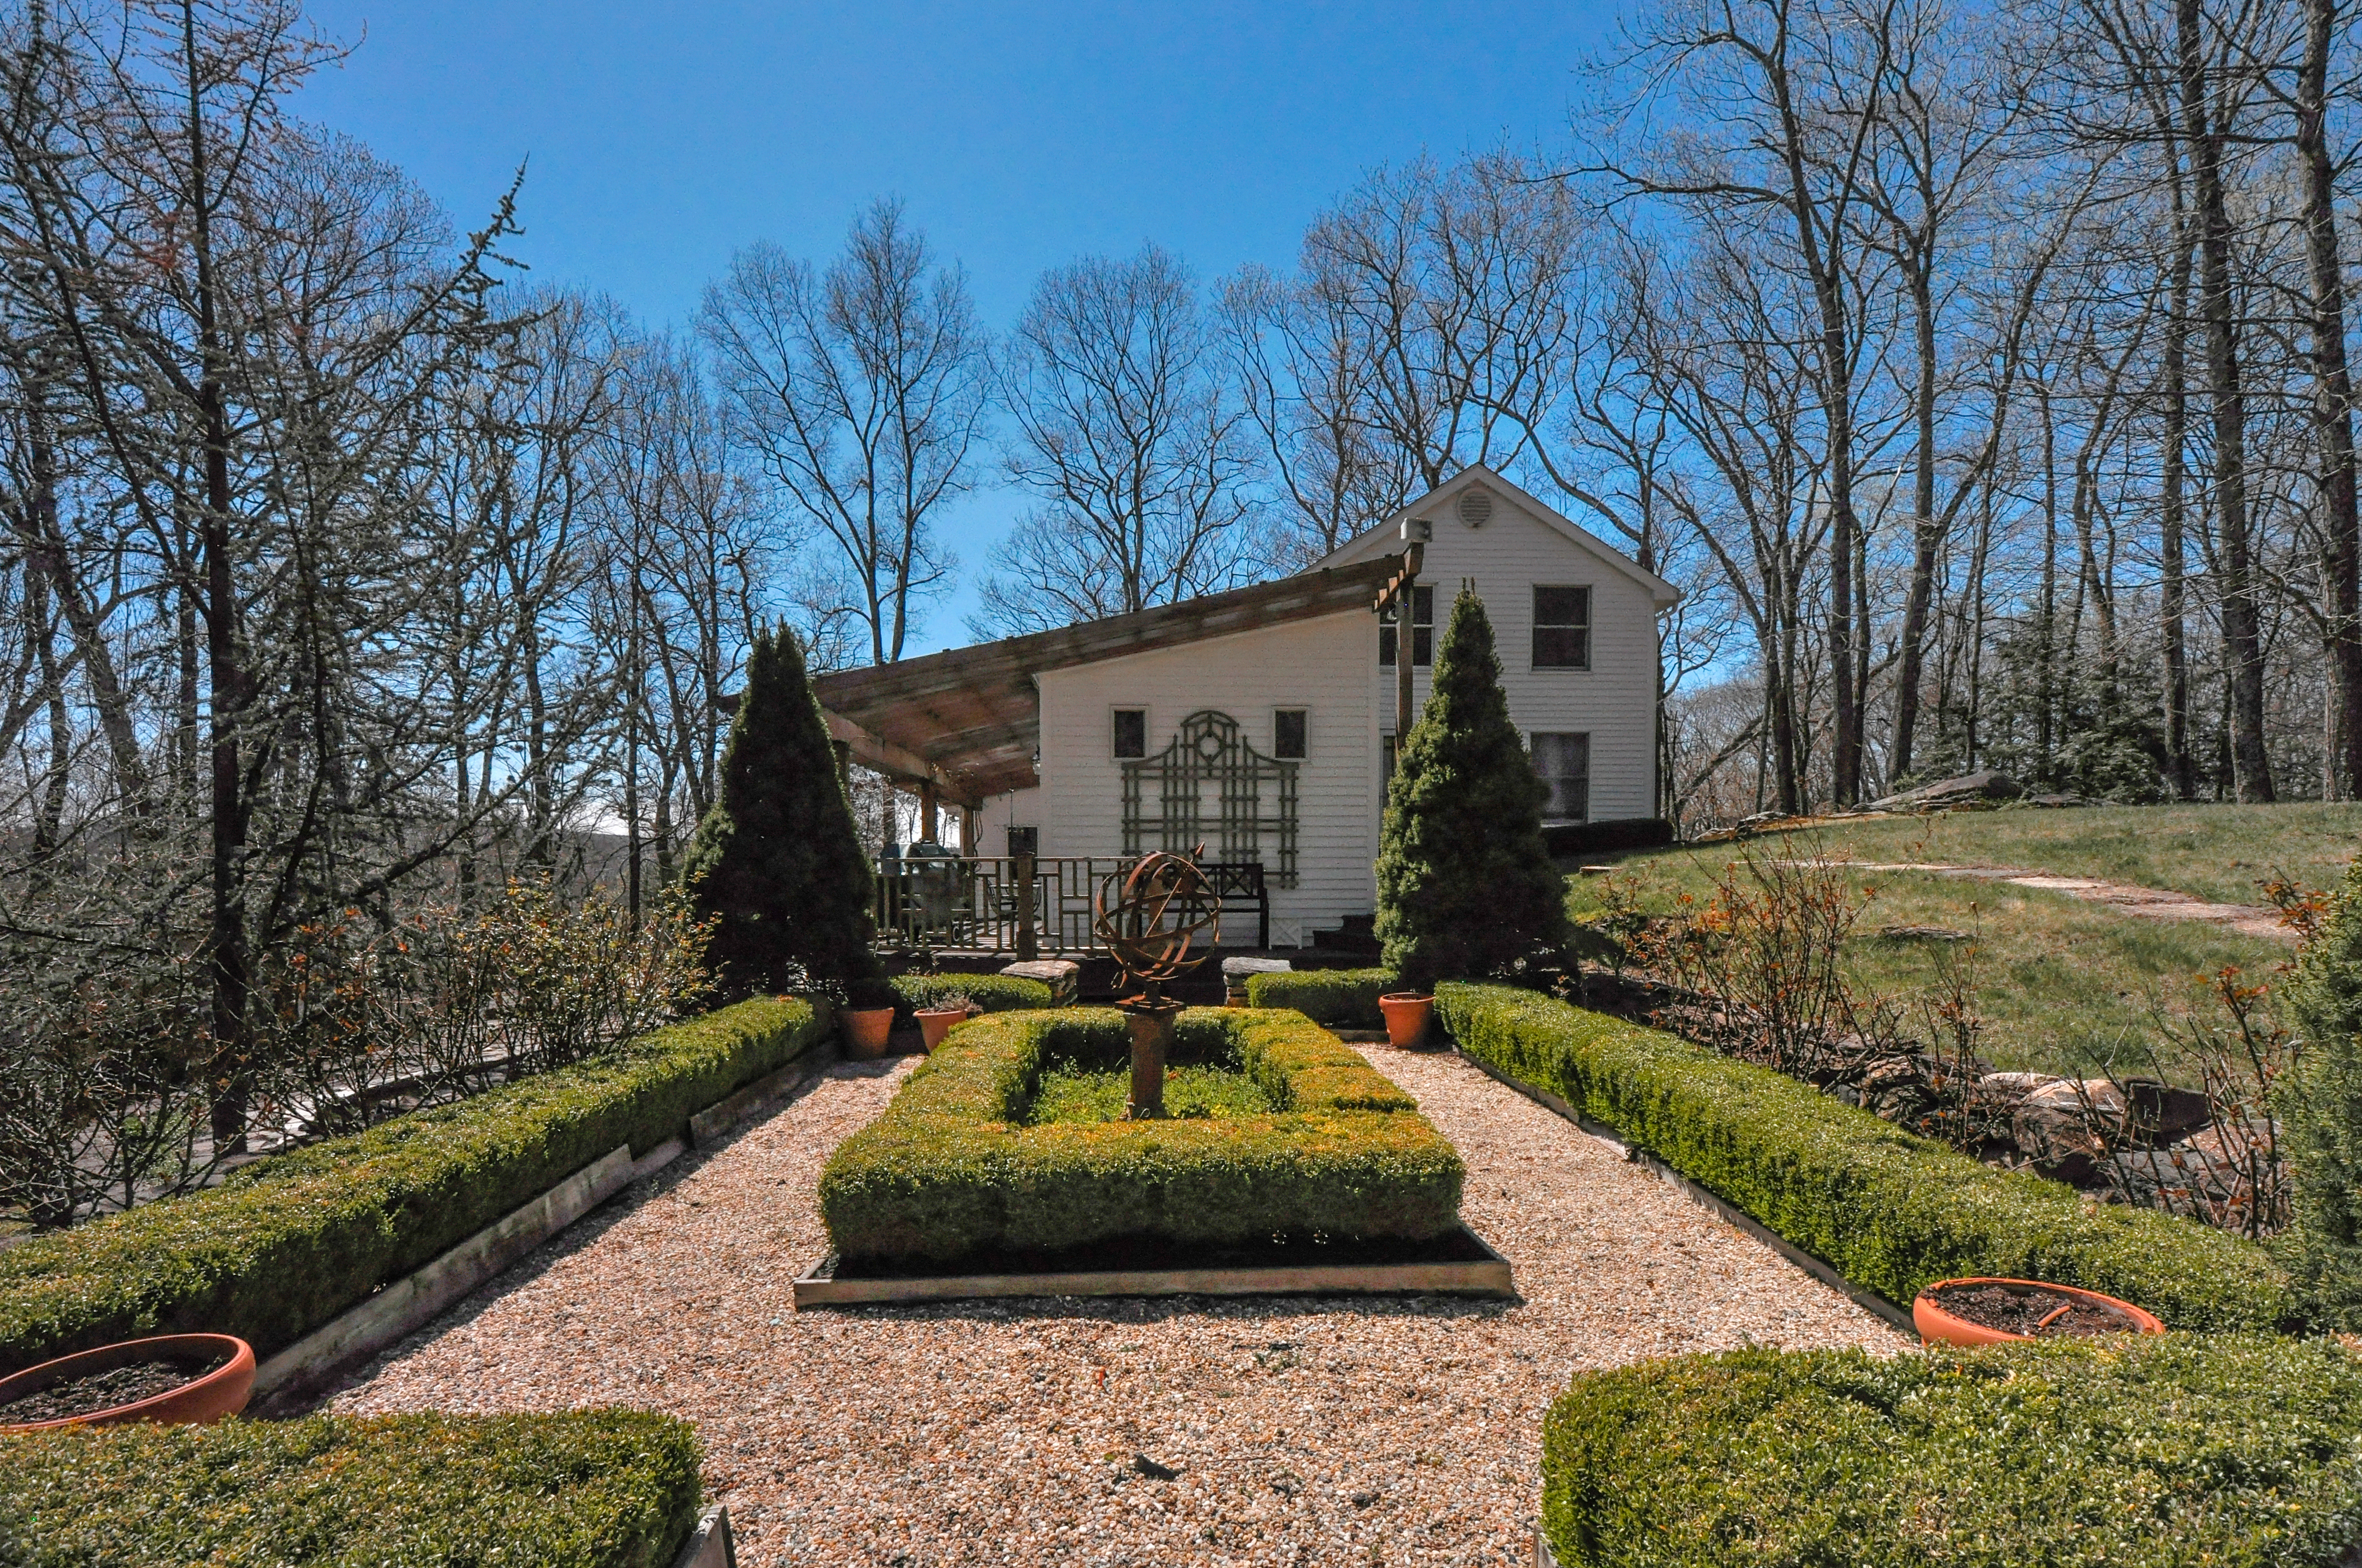 Single Family Home for Sale at Inviting Country Cape 51 Elephant Rock Rd Woodbury, Connecticut, 06798 United States